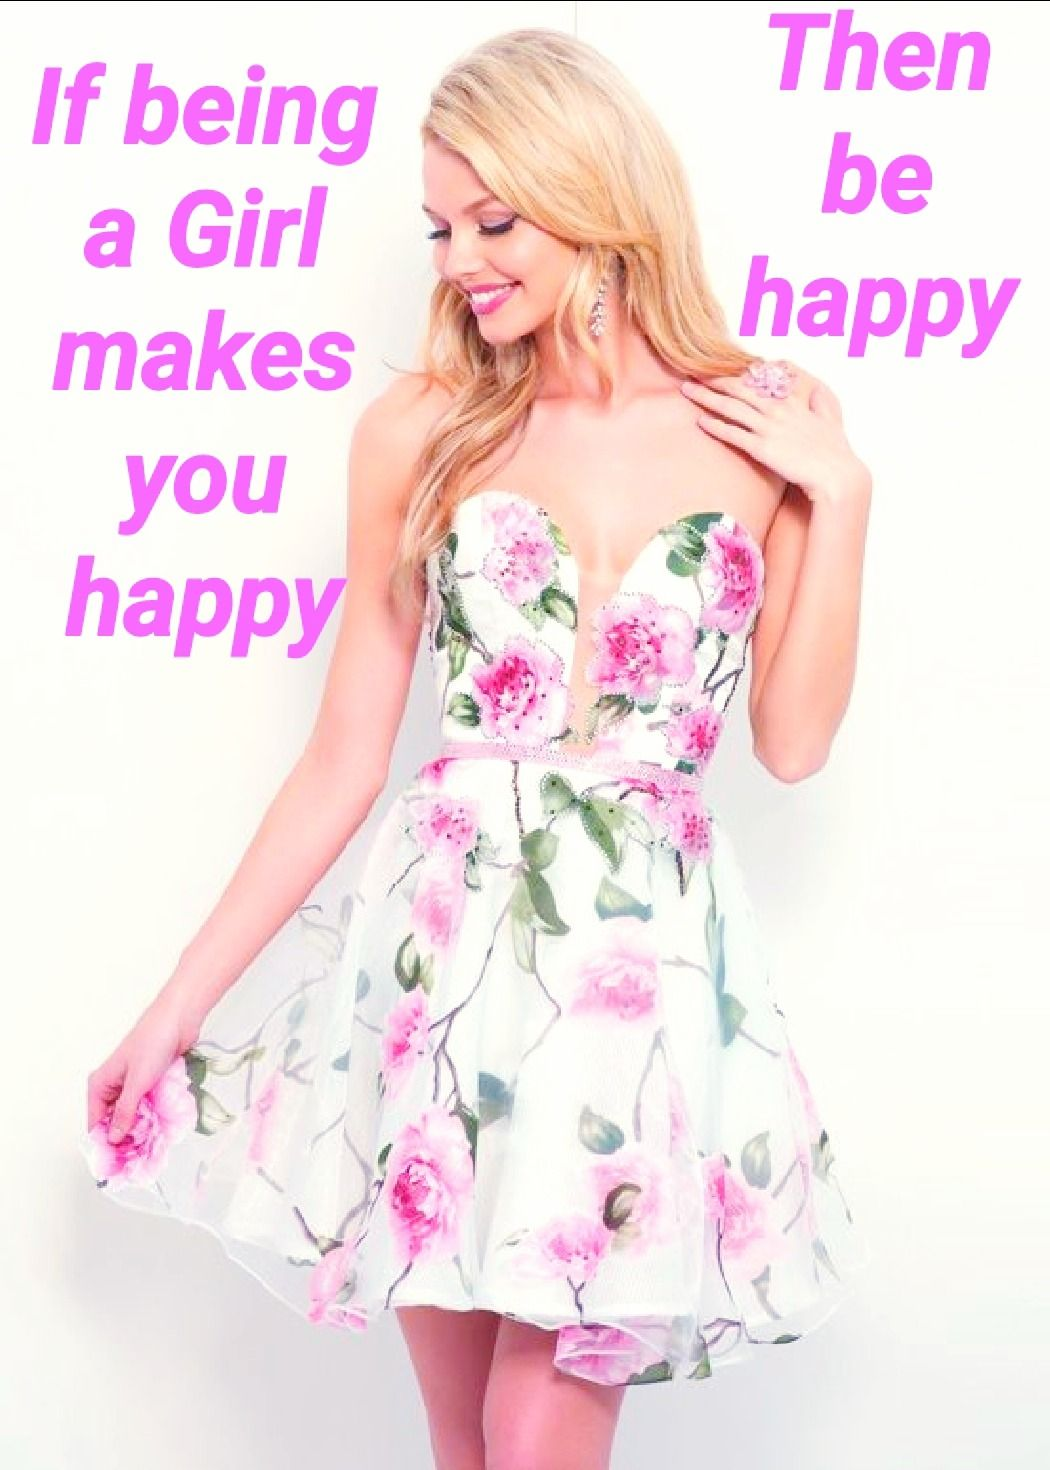 LouiseLonging | I want to be a girly girl | Pinterest